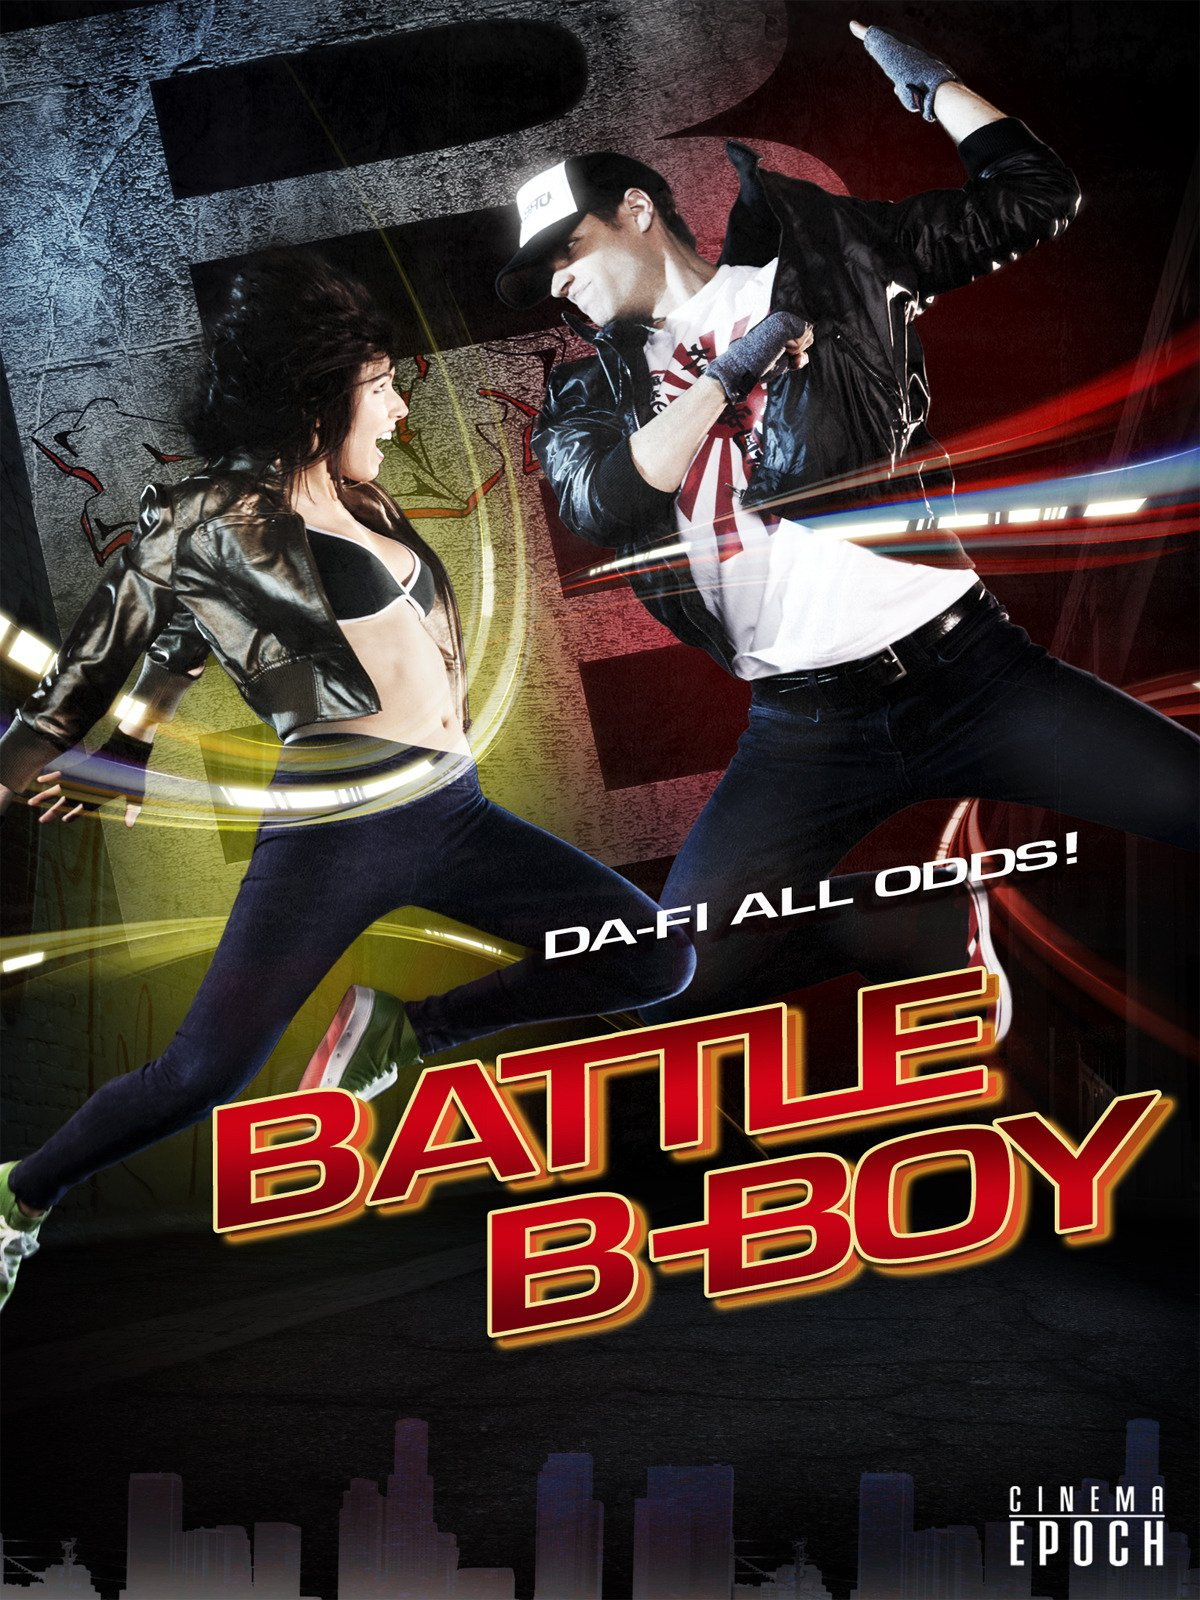 Battle B Boy